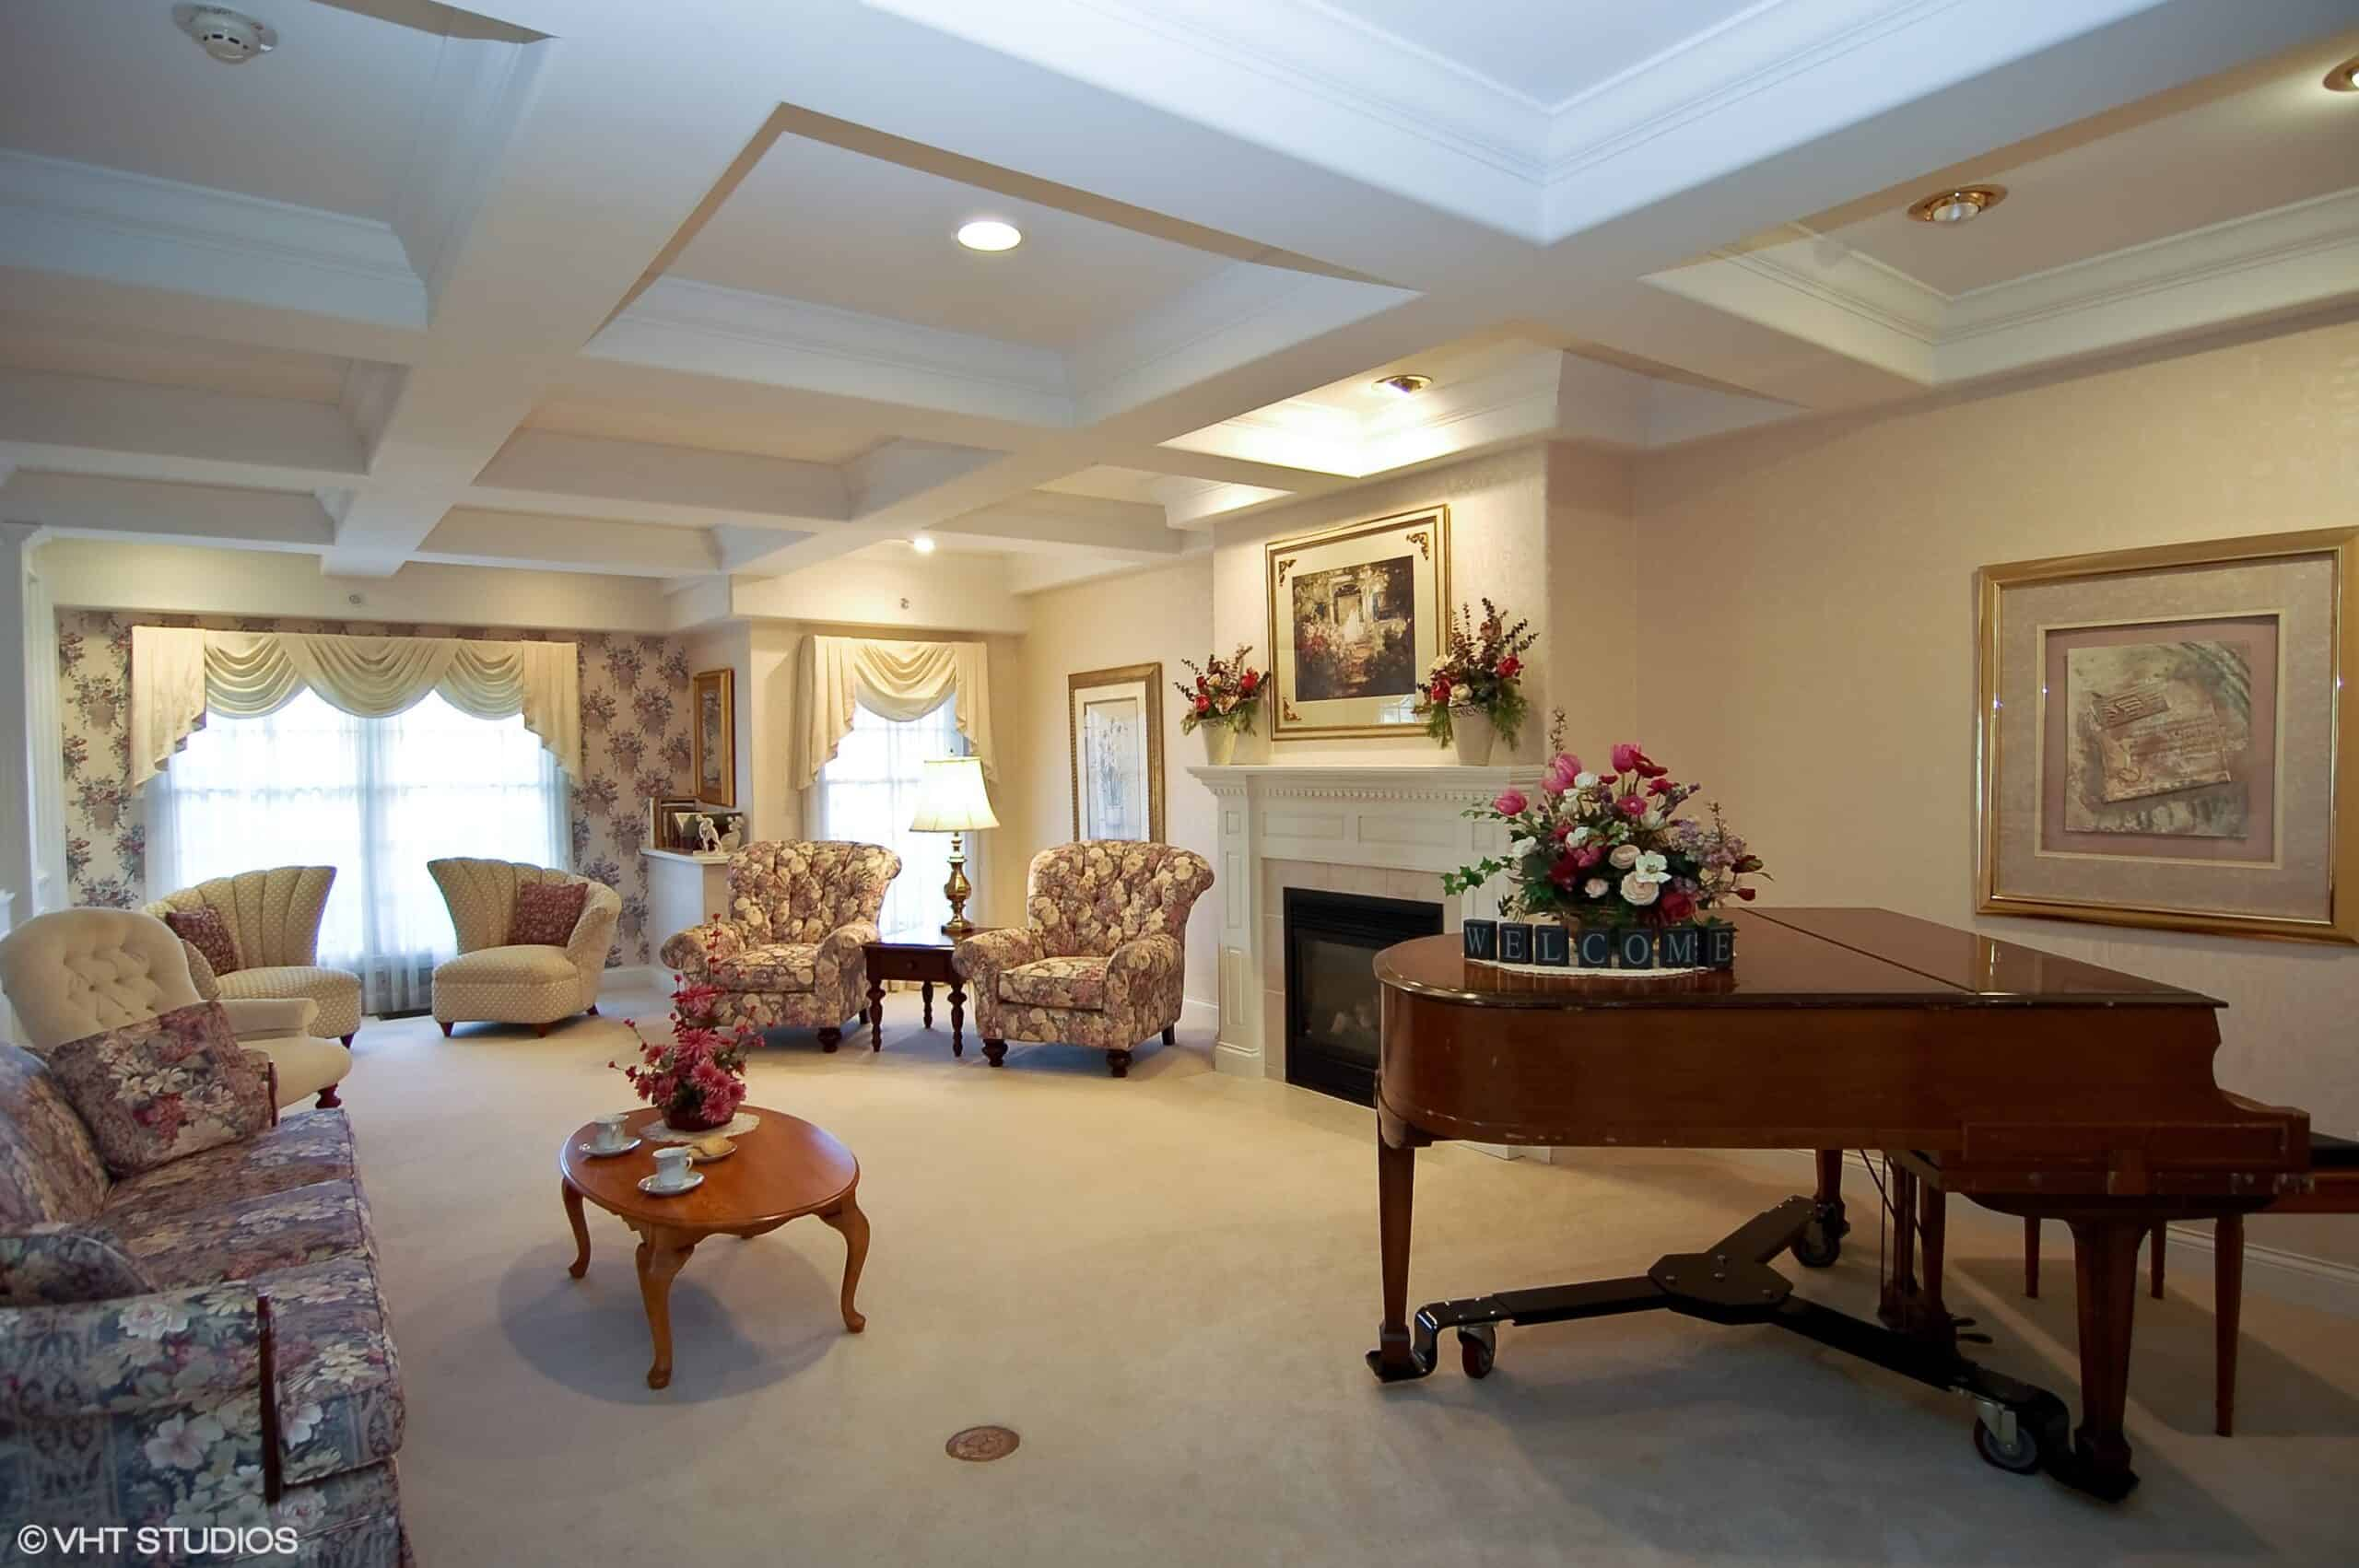 wynnfield crossing, a senior living community in rochester, indiana, has a lounge area with a piano